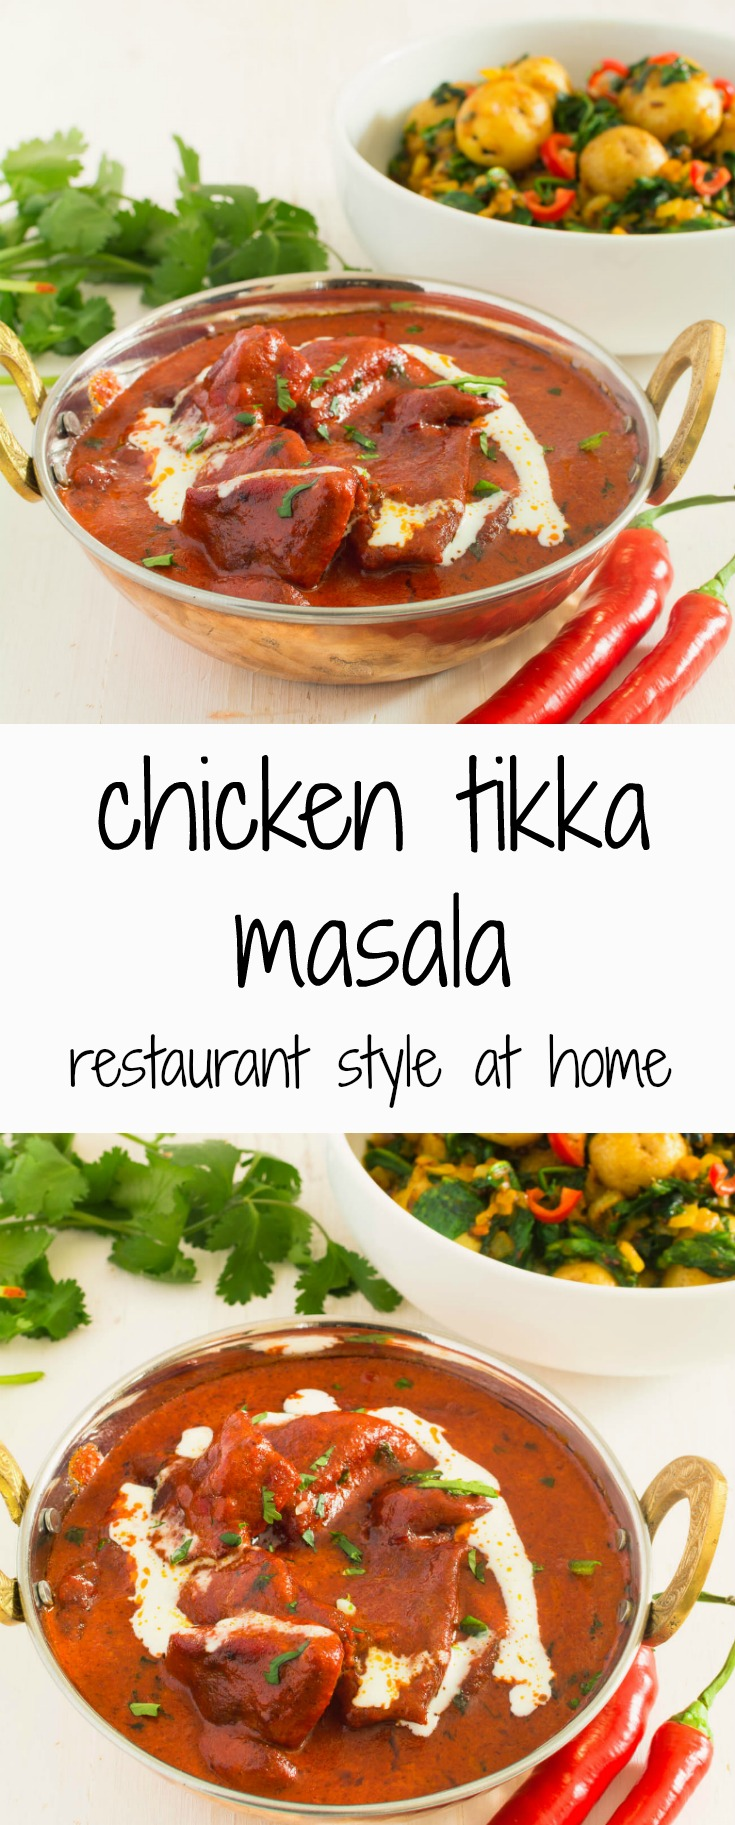 Make Indian restaurant chicken tikka masala at home.